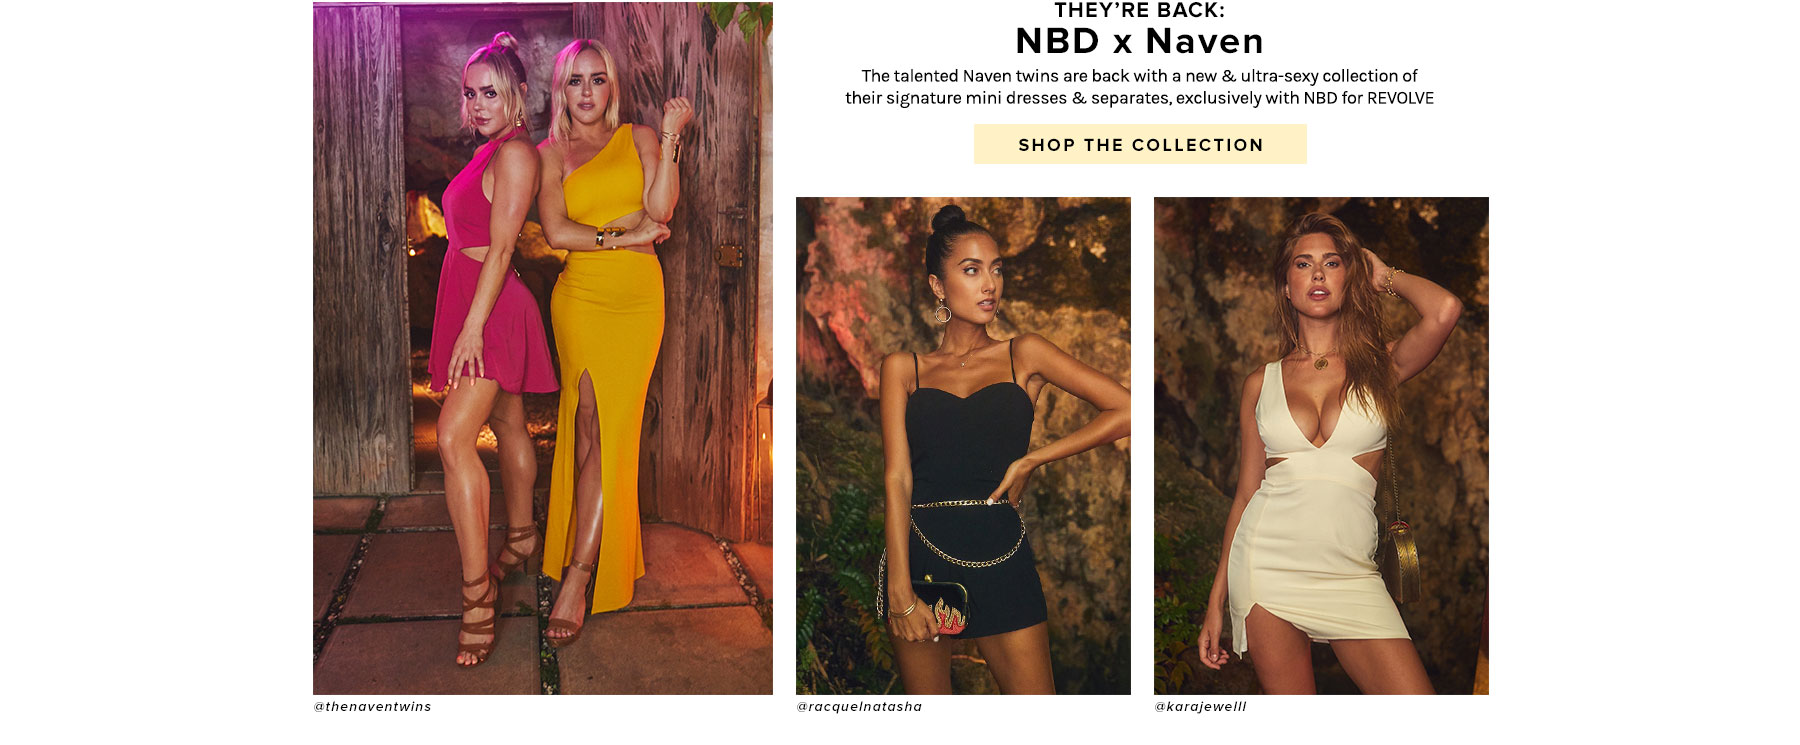 They're Back: NBD x Naven. The talented Naven twins are back with a new & ultra-sexy collection of their signature mini dresses & separates, exclusively with NBD for REVOLVE. Shop the collection.